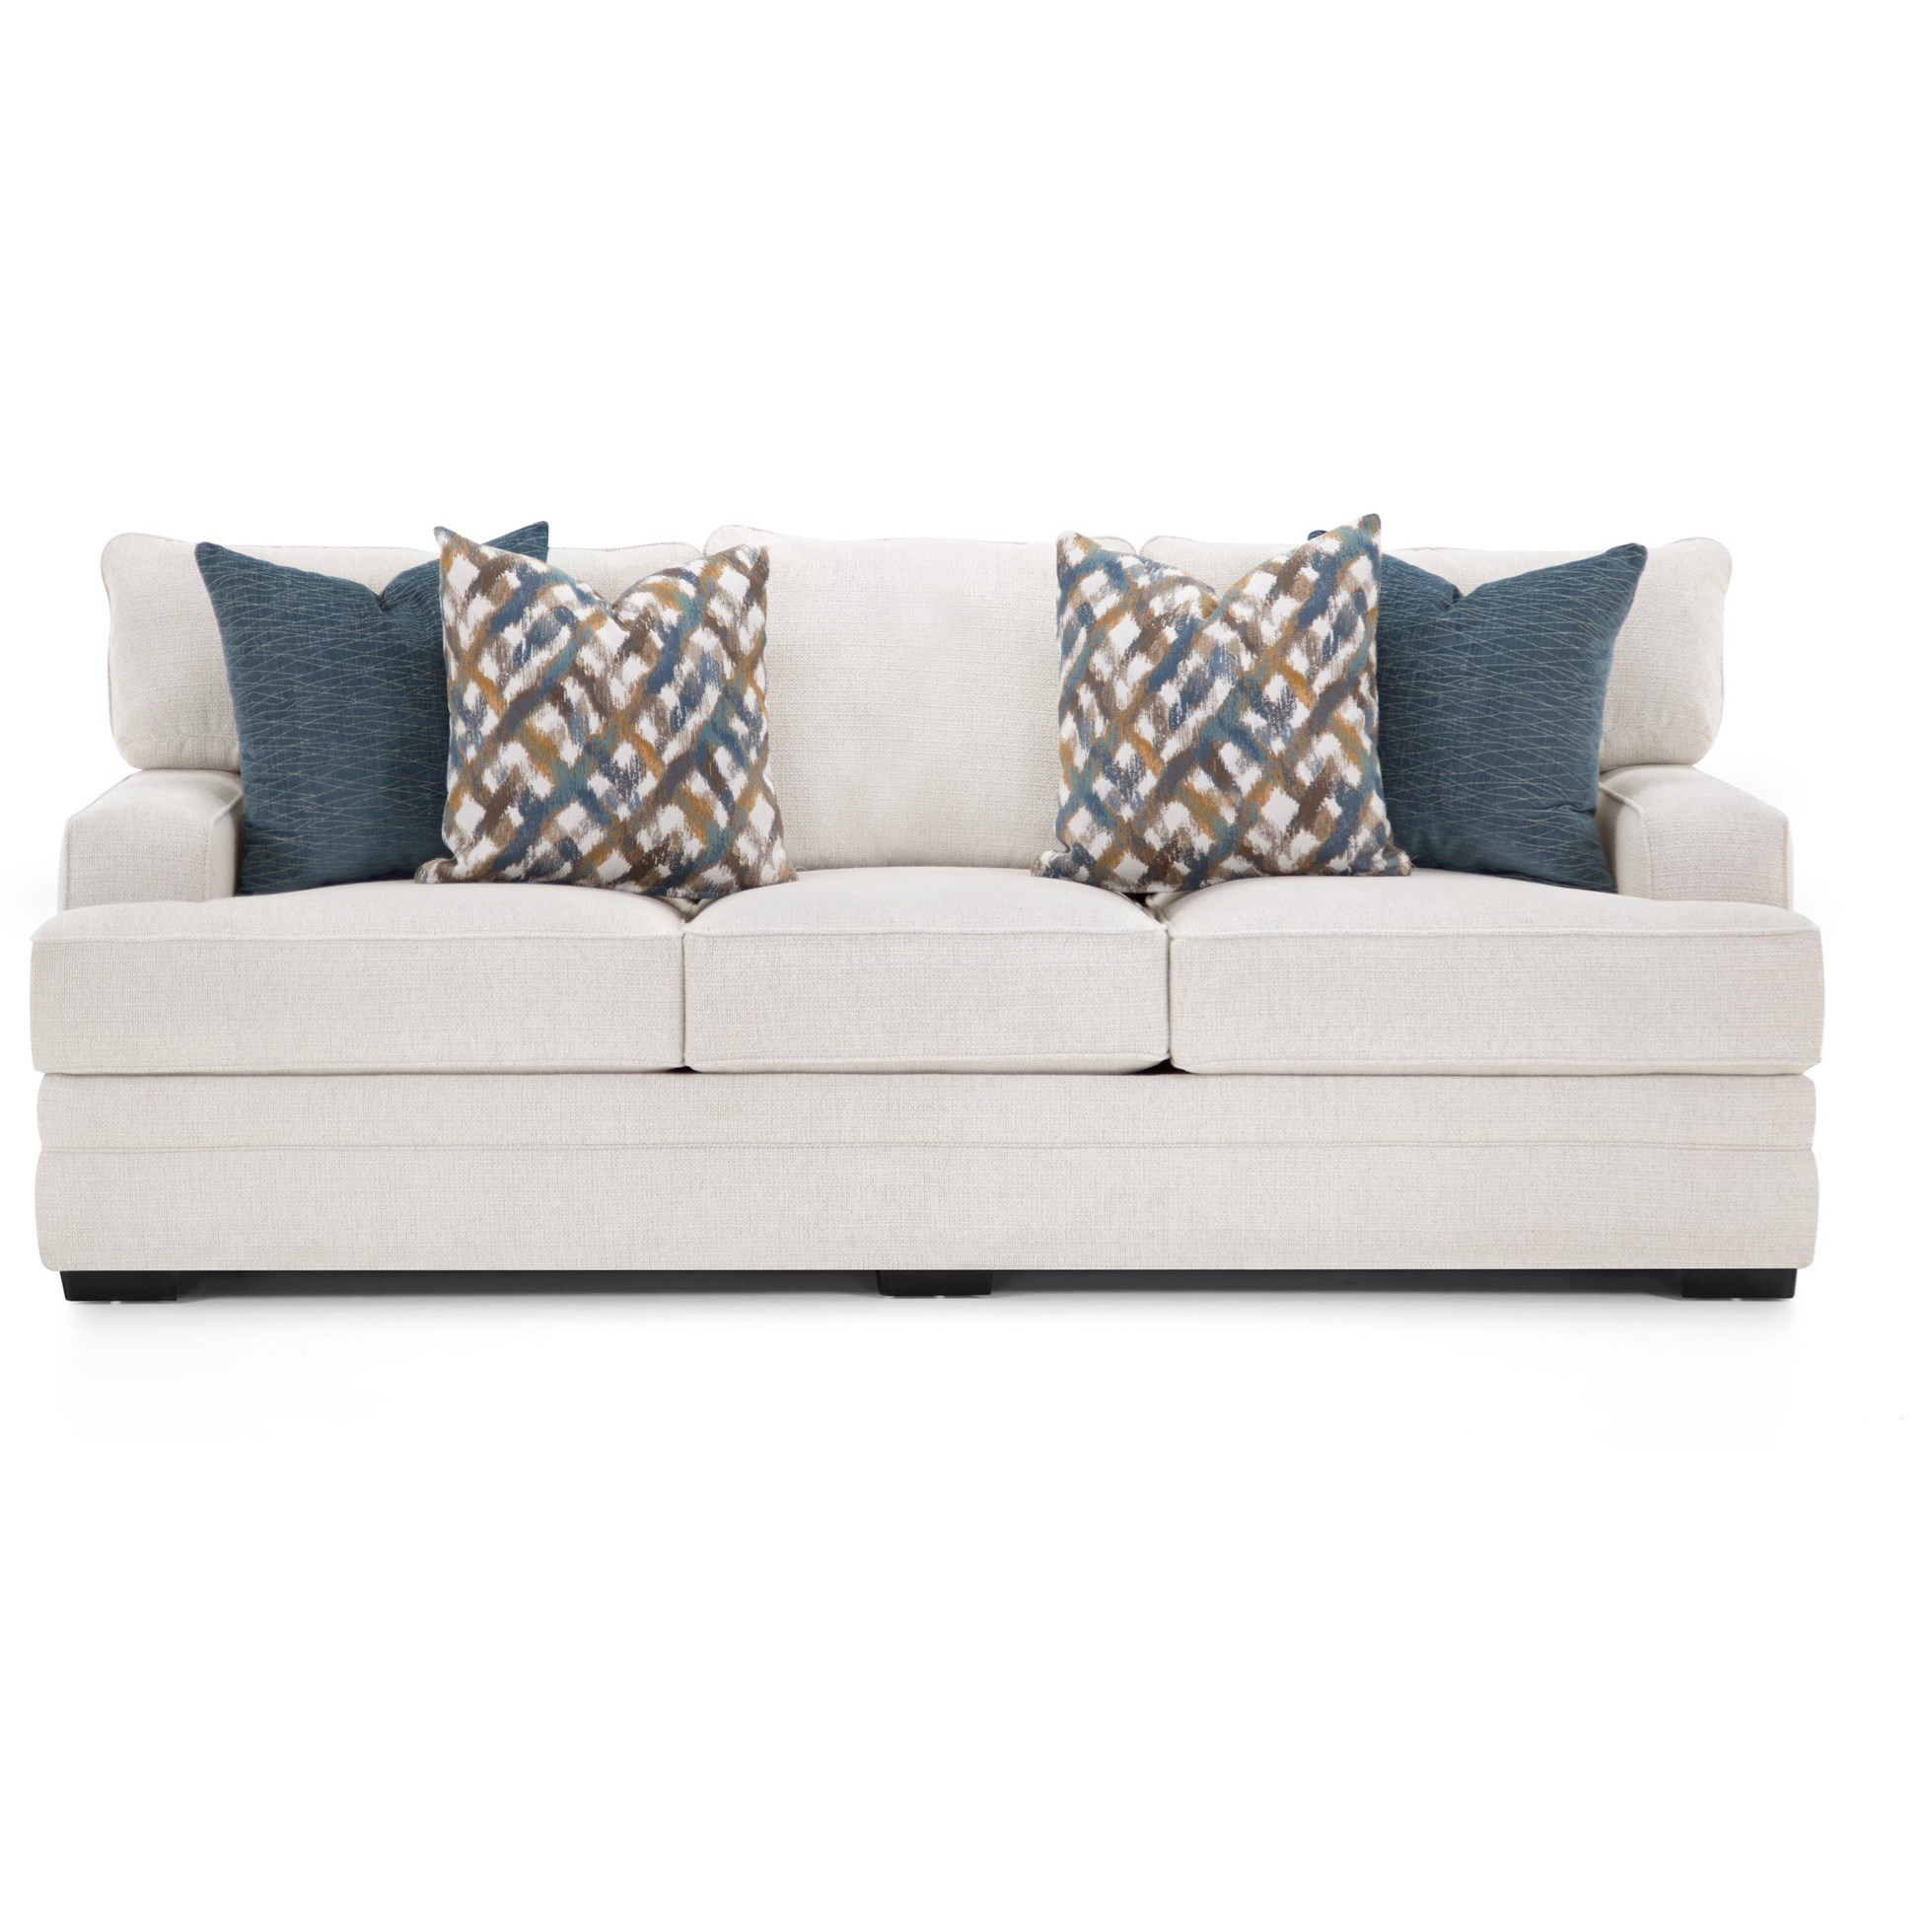 953 Sofa by Franklin at Wilcox Furniture